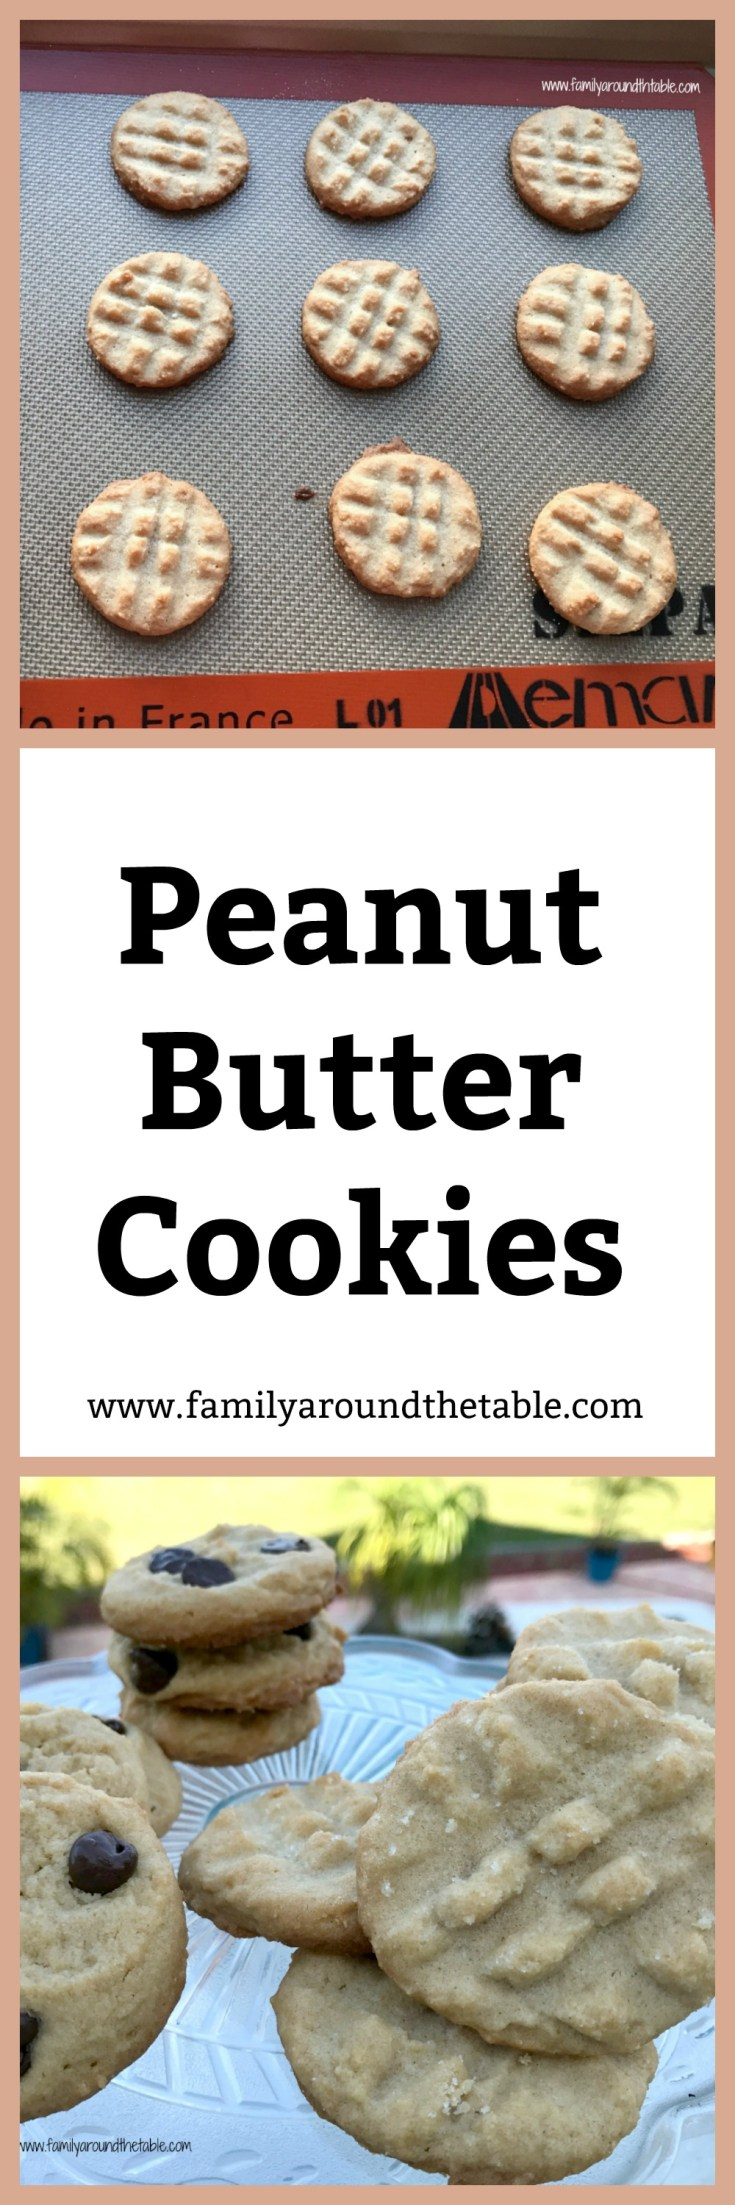 Mix up this peanut butter cookie by adding milk chocolate chips. My family's favorite peanut butter cookie is a great after school snack or lunch box treat.